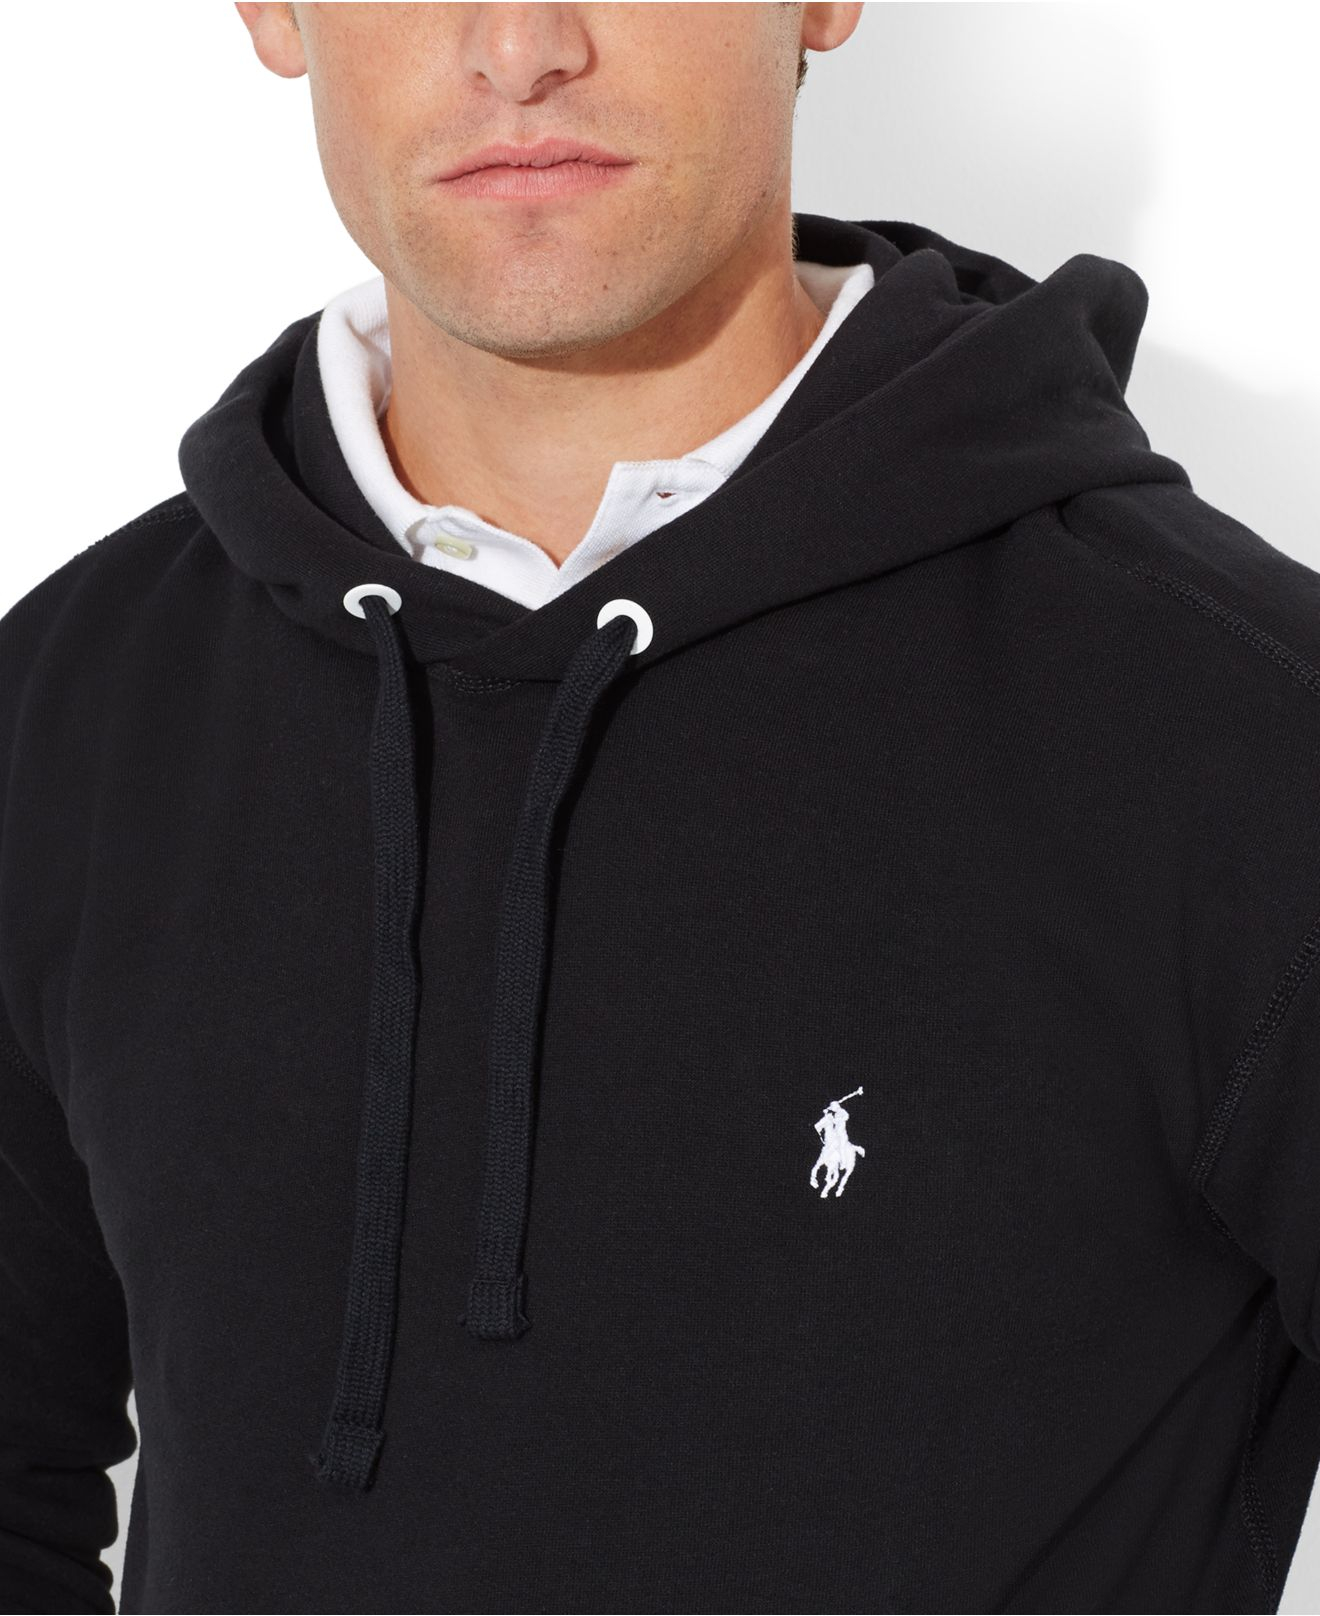 polo ralph lauren solid fleece hoodie in black for men lyst. Black Bedroom Furniture Sets. Home Design Ideas